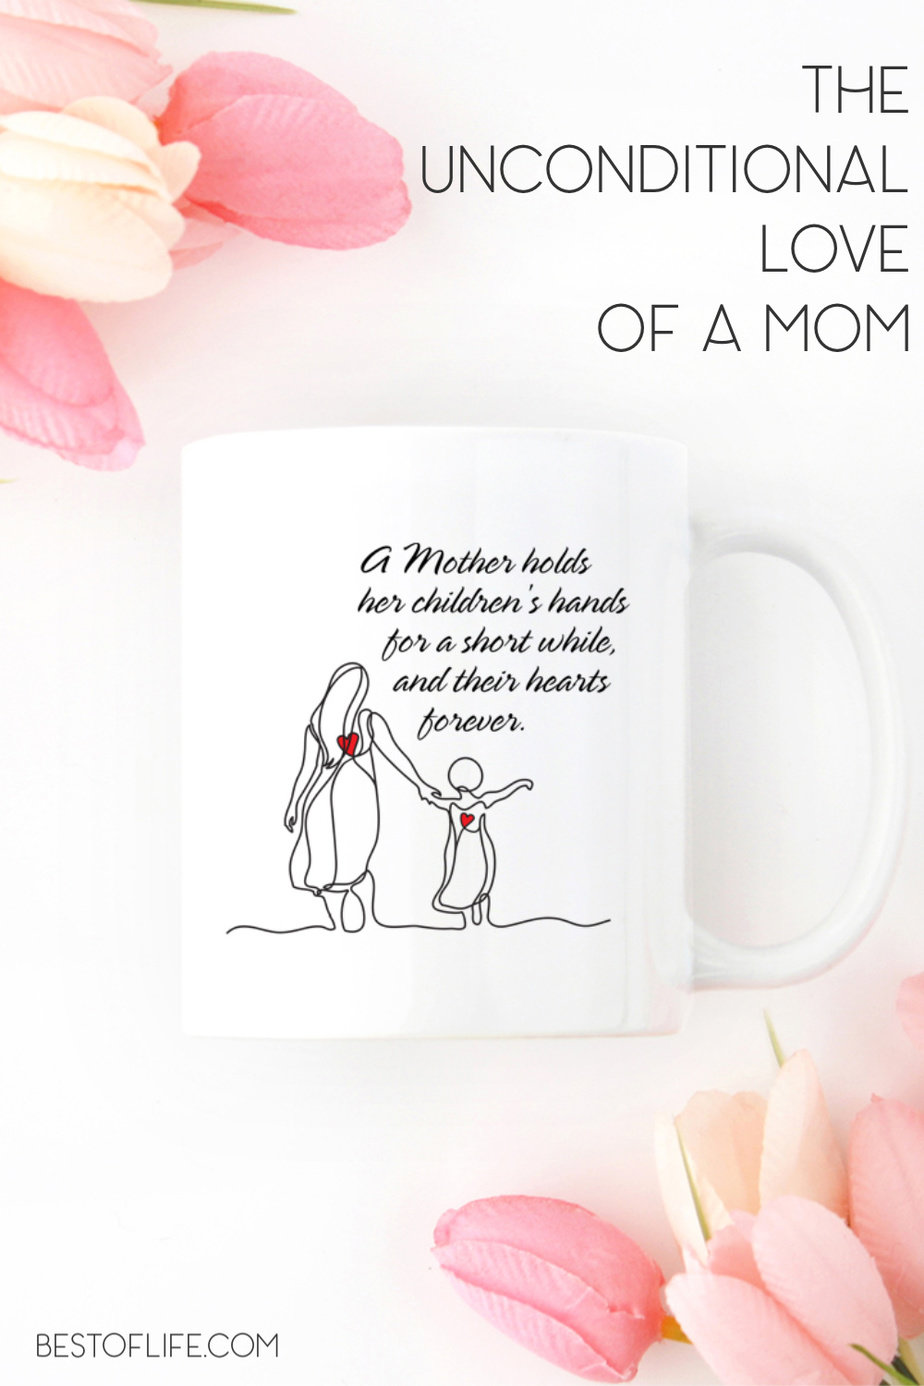 A mother's love is unconditional and this a mother holds her children's hands for a short while, and their hearts forever mug captures it perfectly. Inspirational Quotes | Mother's Day Gift Ideas | Quotes about Mother's | Quotes for Moms | Inspirational Mugs via @thebestoflife